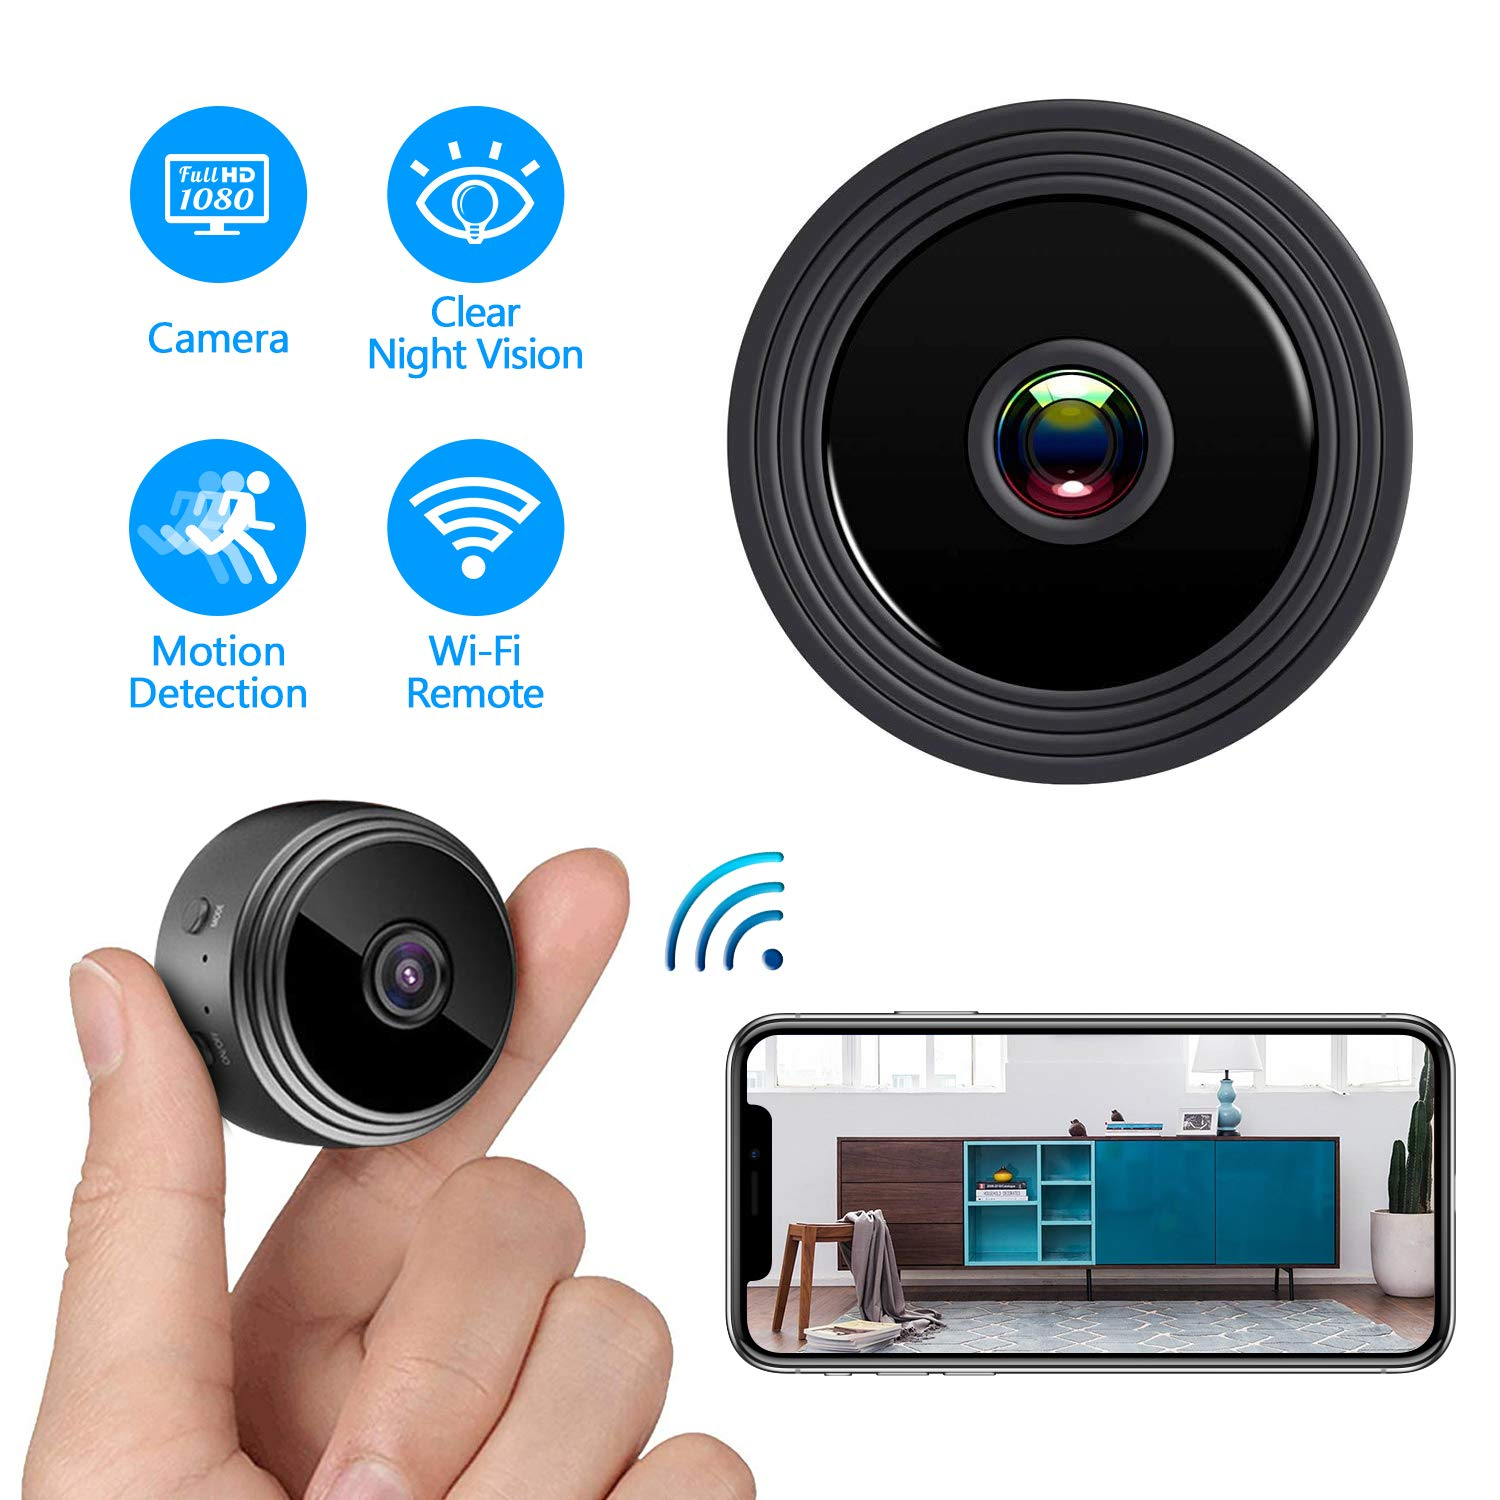 New tech long range small <strong>camera</strong> secret mini secret hidden <strong>camera</strong> cctv secret <strong>camera</strong> hidden wifi remote